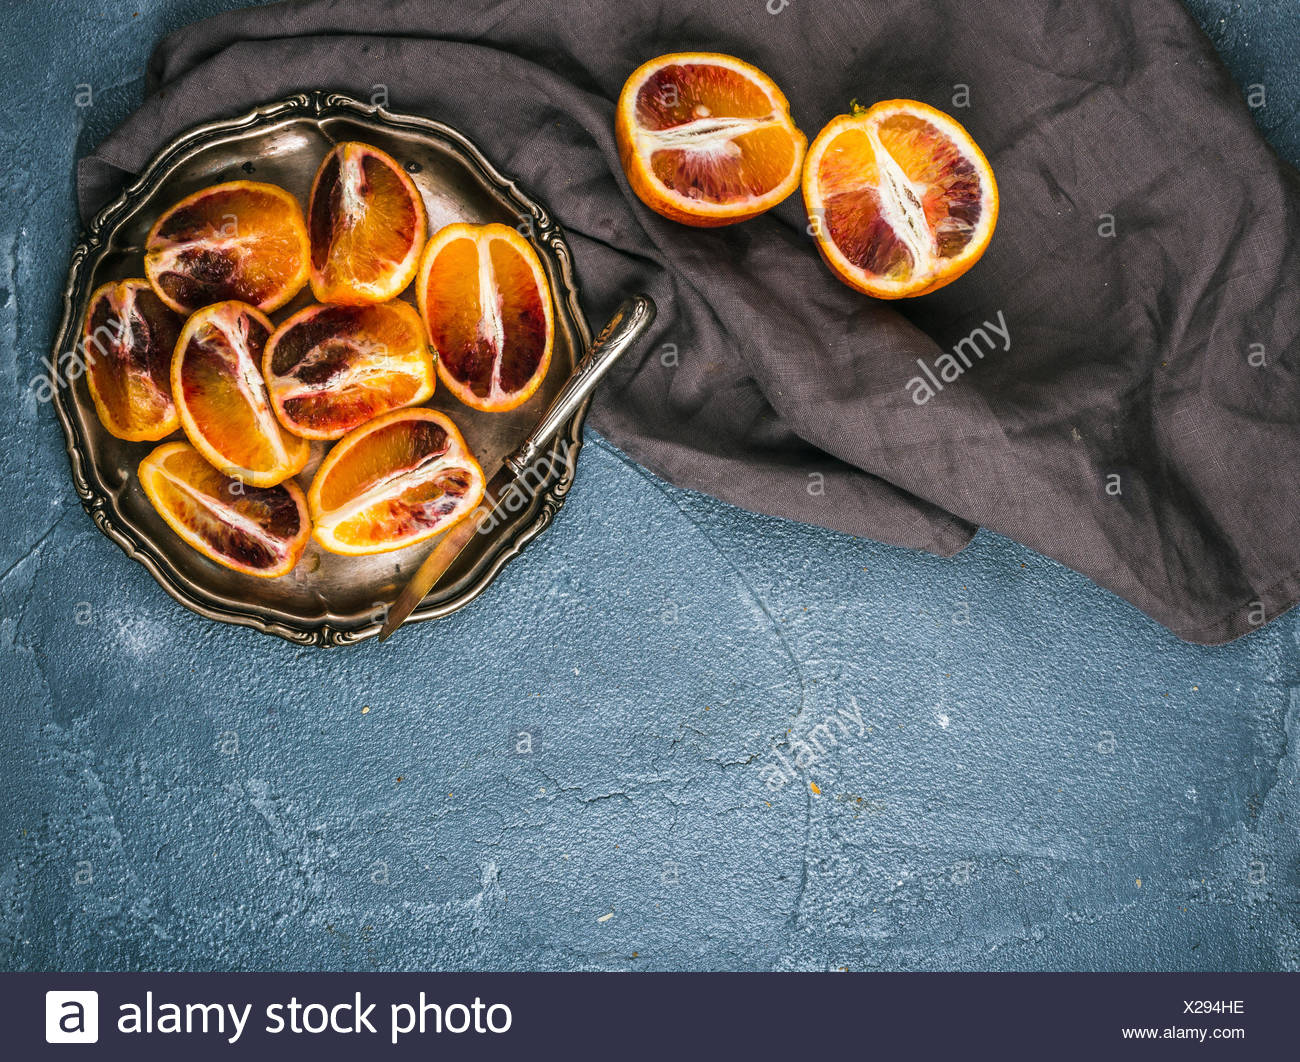 Bloody red sicilian oranges cut into quarters in vintage metal plate over concrete textured background, top view - Stock Image